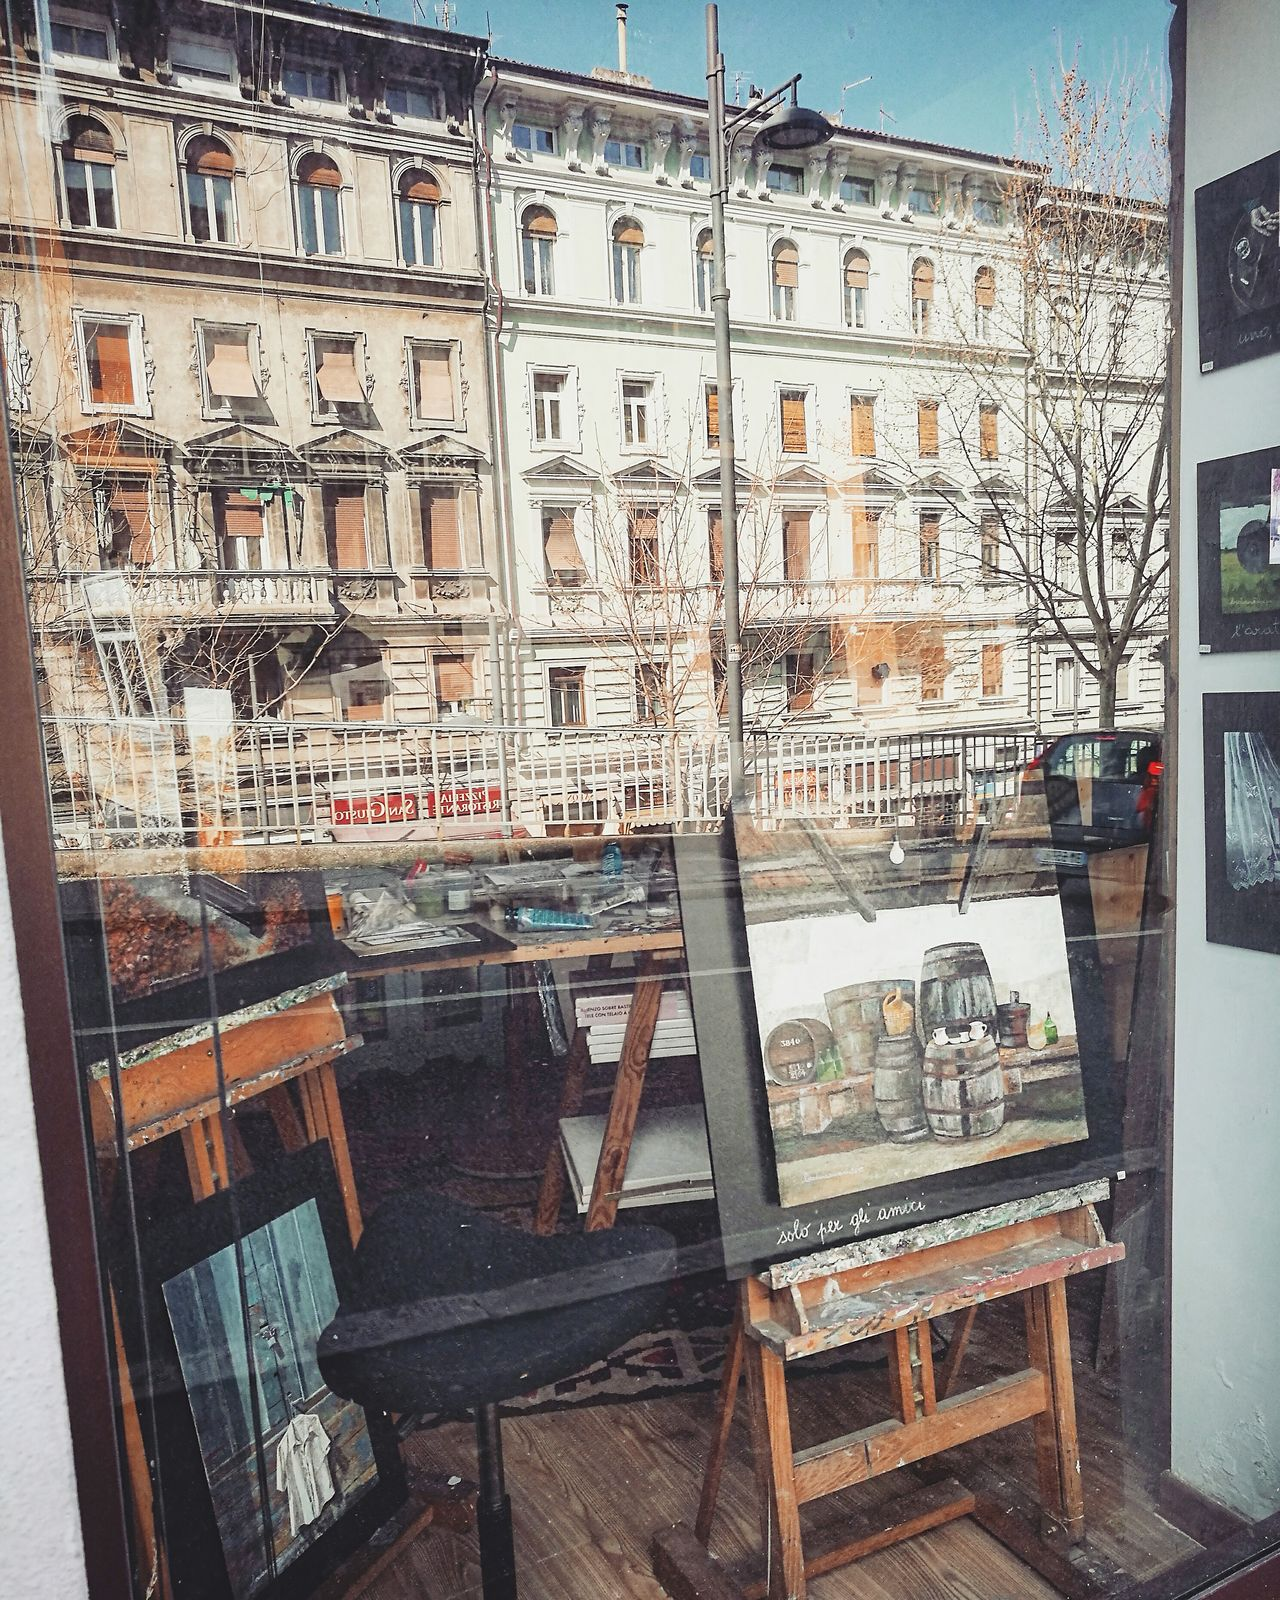 Window No People Indoors  Architecture Day Italy Lifestyles Streetphoto Street Life Cute Streetphotography Life Freshness Beautiful Gallery Painting Paintbrush Artist Art Gallery City